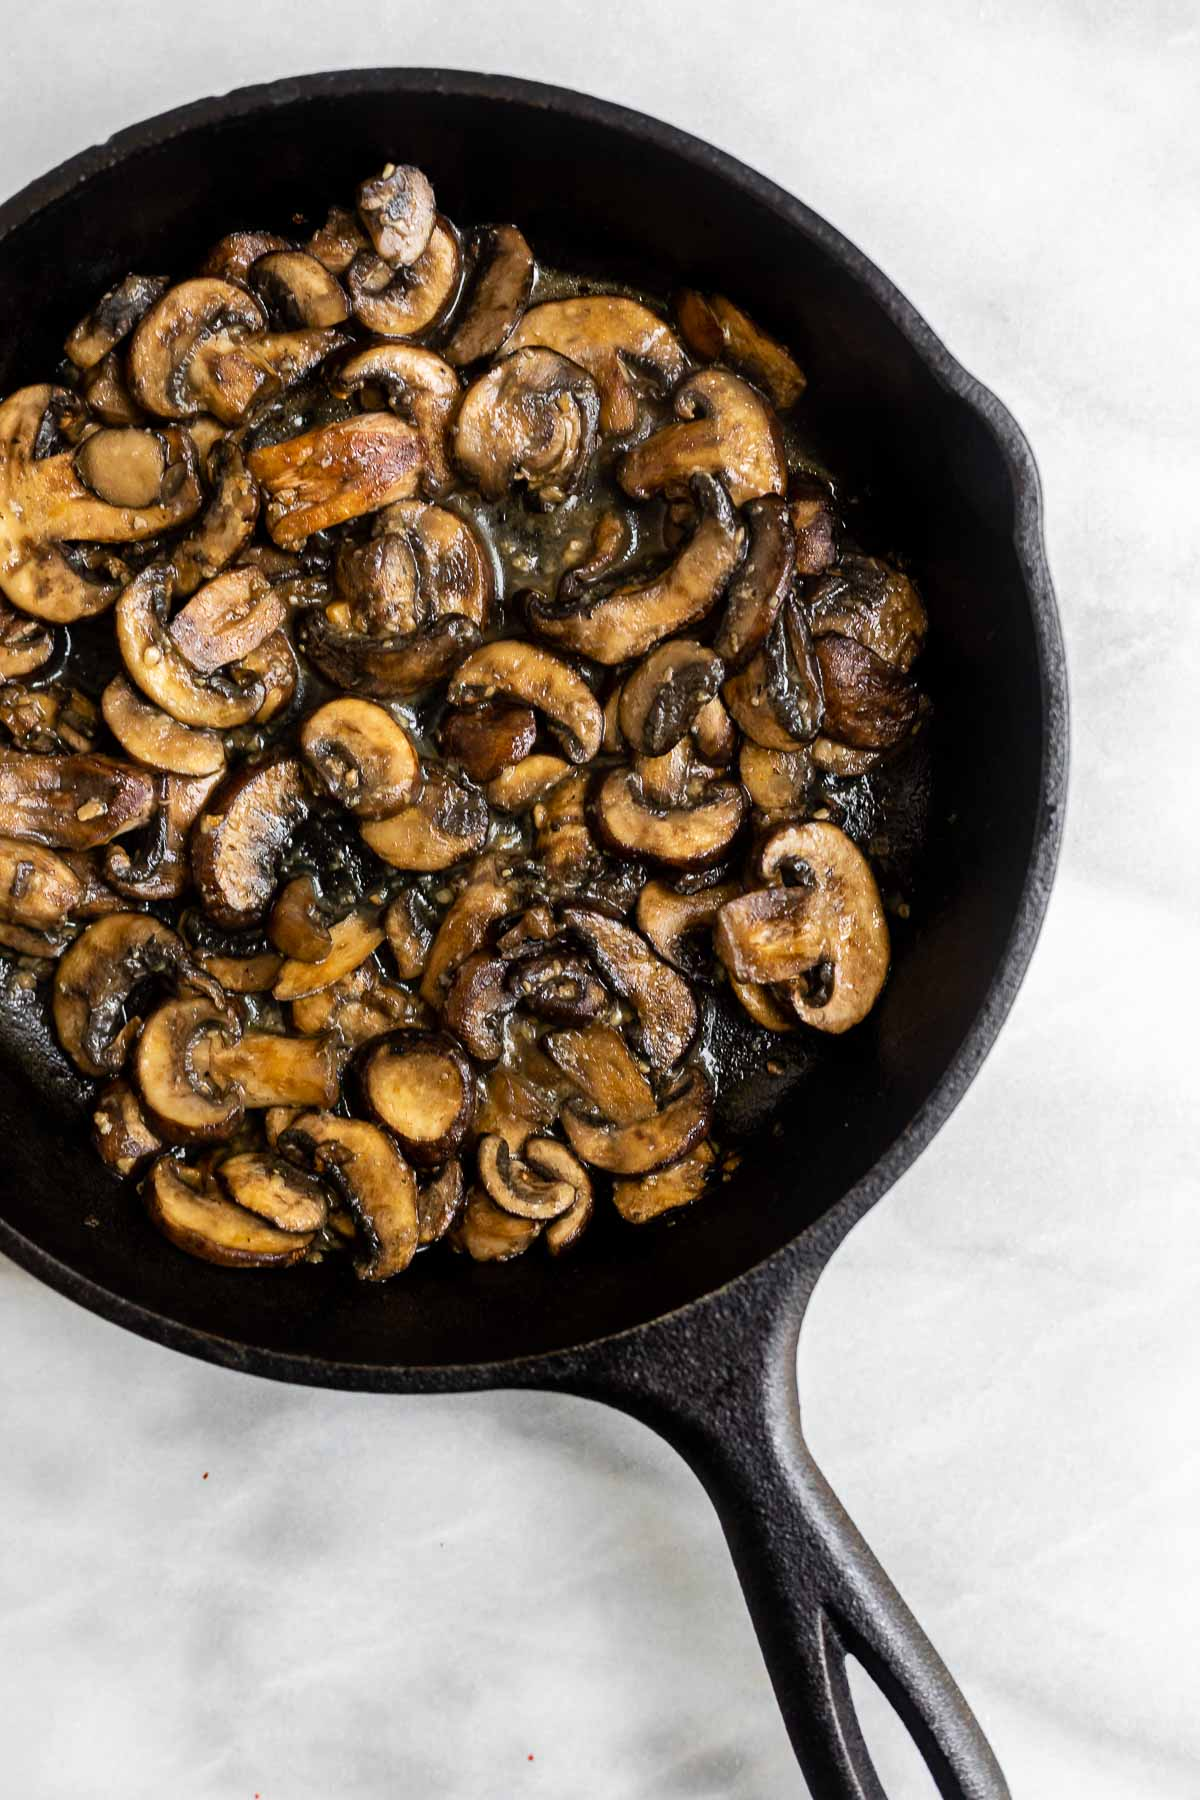 Mushrooms sauteed in a black pot with garlic.